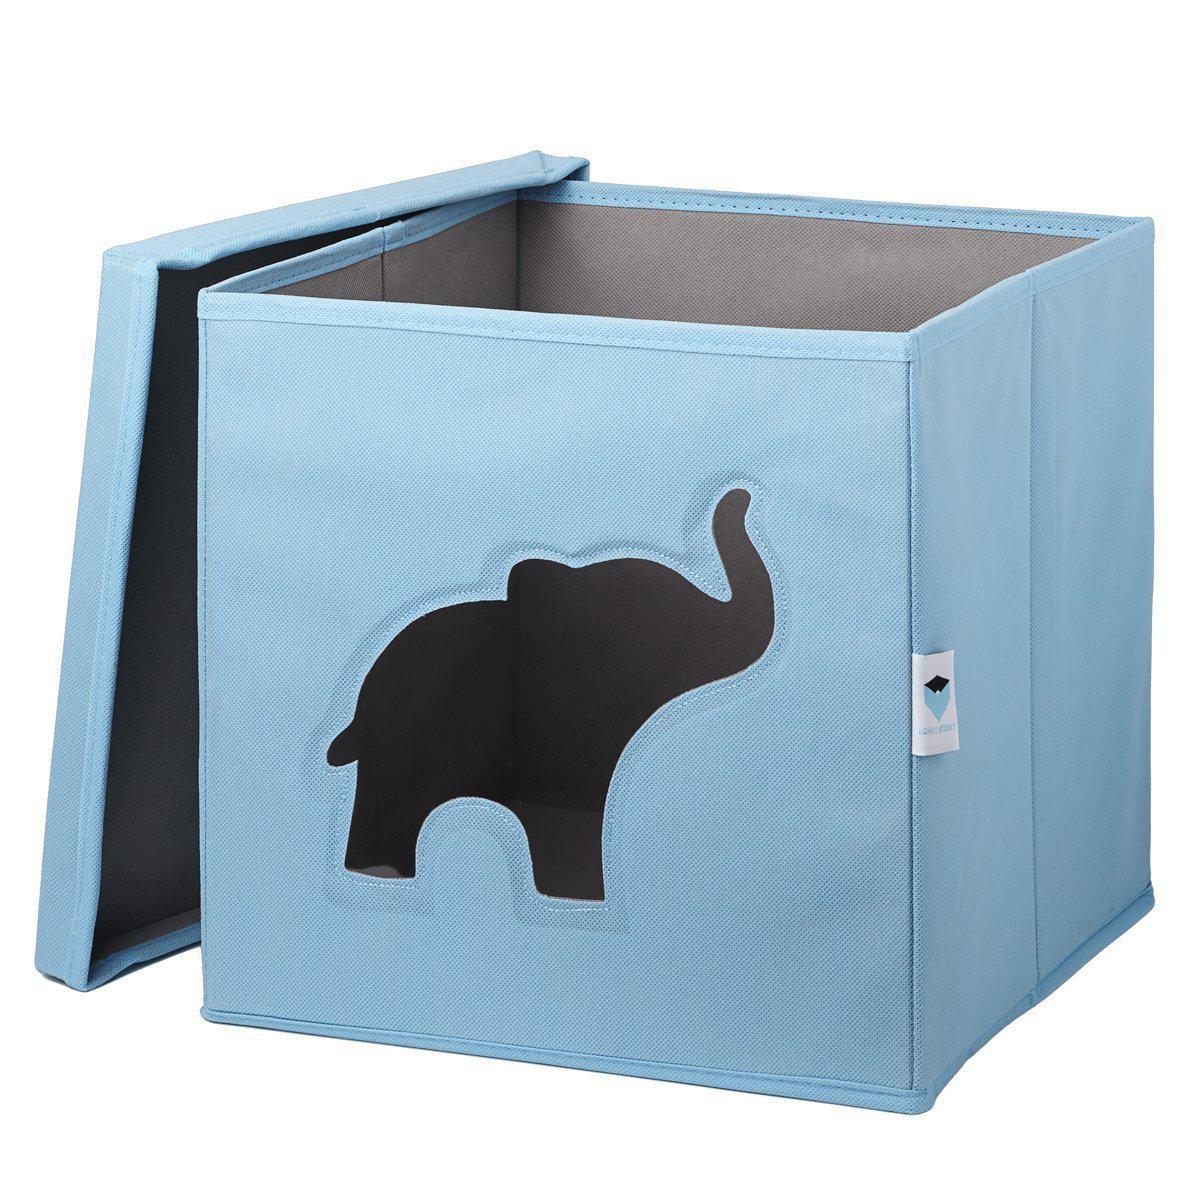 spielzeugkiste elefant hellblau grau ordnung im kinderzimmer. Black Bedroom Furniture Sets. Home Design Ideas